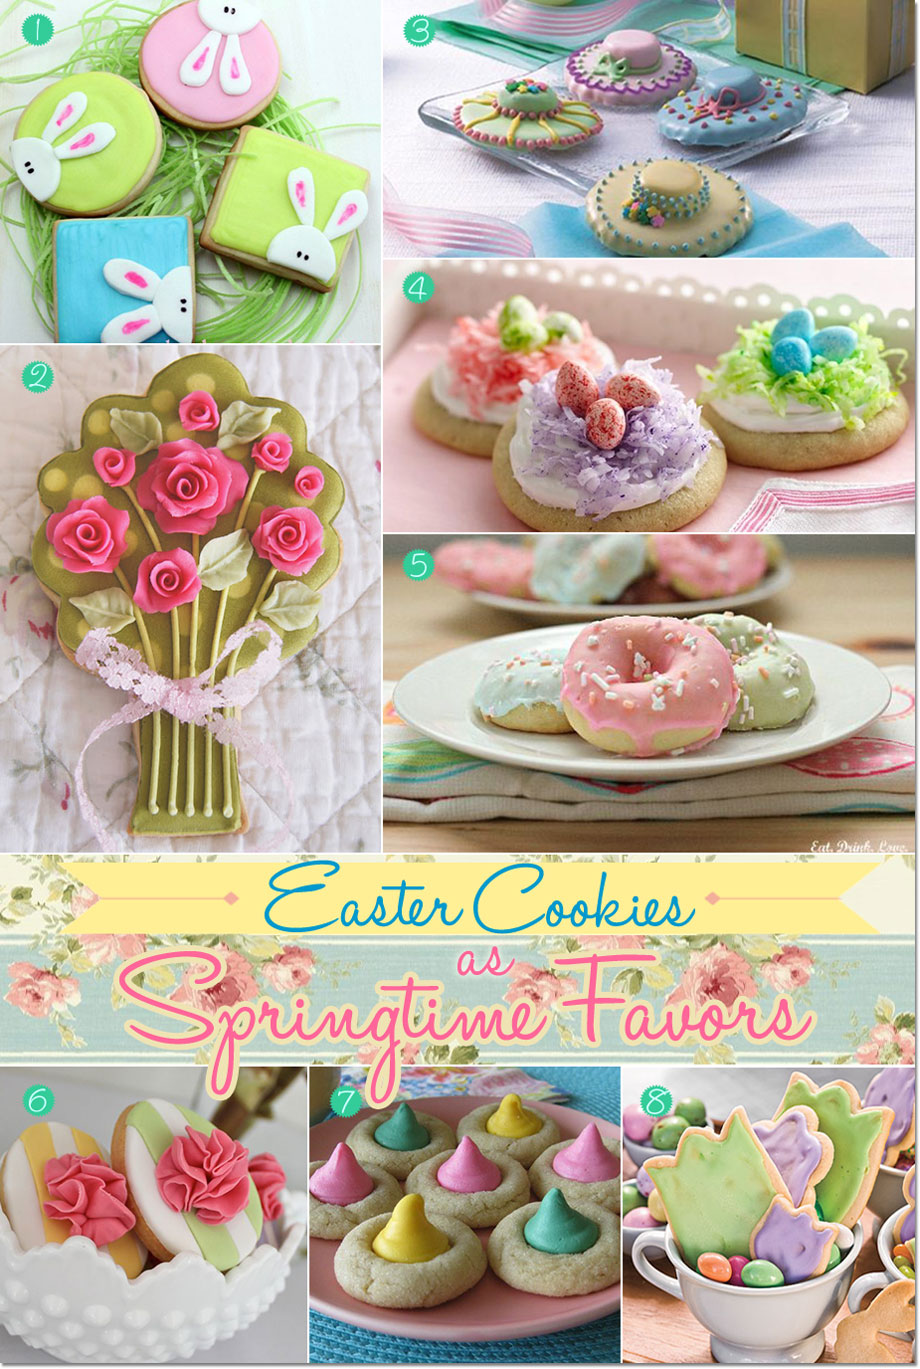 Easter cookies with cute designs and colors. Features bonnet to tulip to Italian Easter cookies.